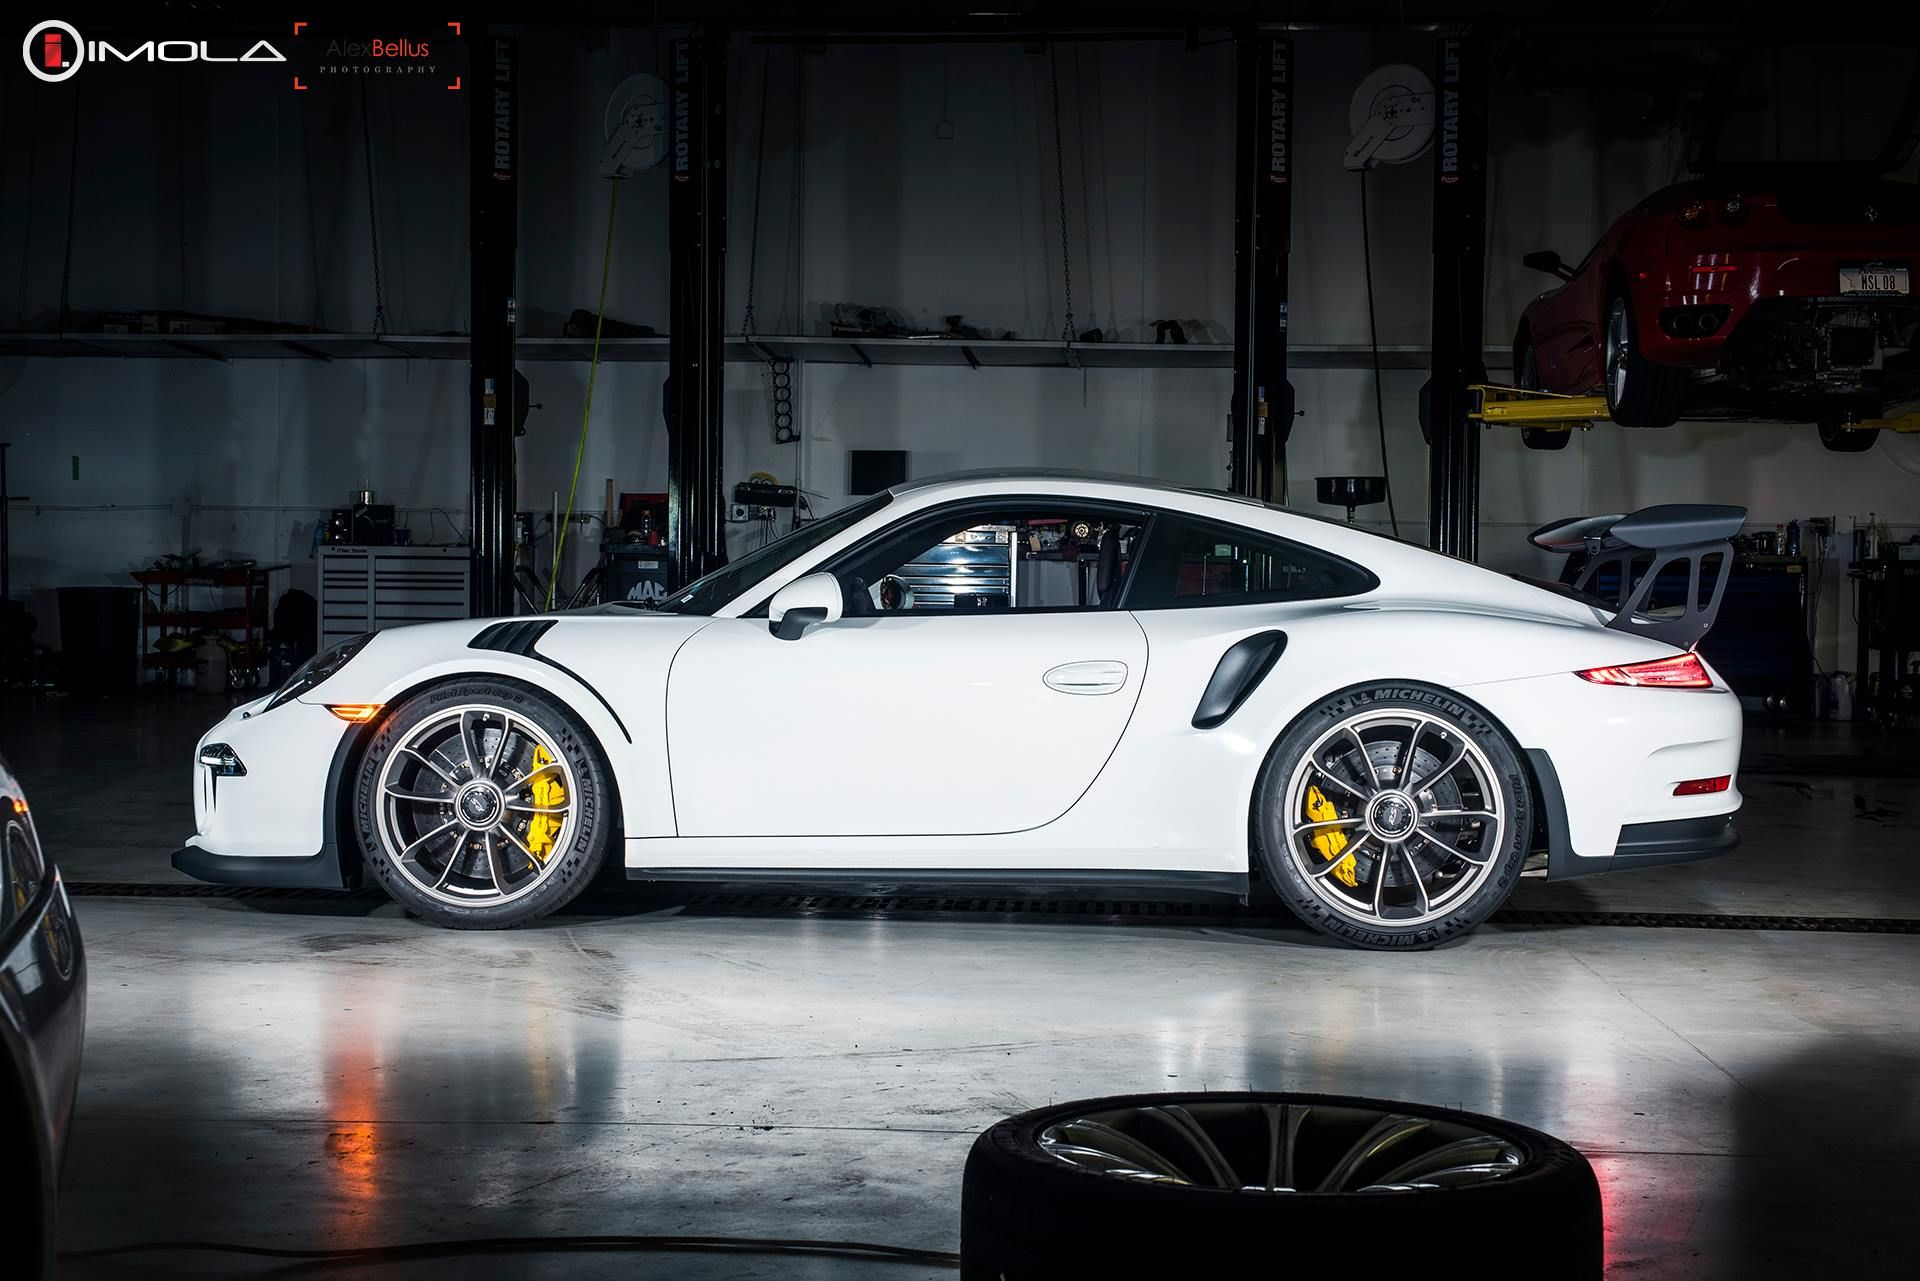 2016 porsche gt3 rs for sale bummer i have noooo money 2016 porsche gt3 rs for sale bummer i have noooo money sciox Images